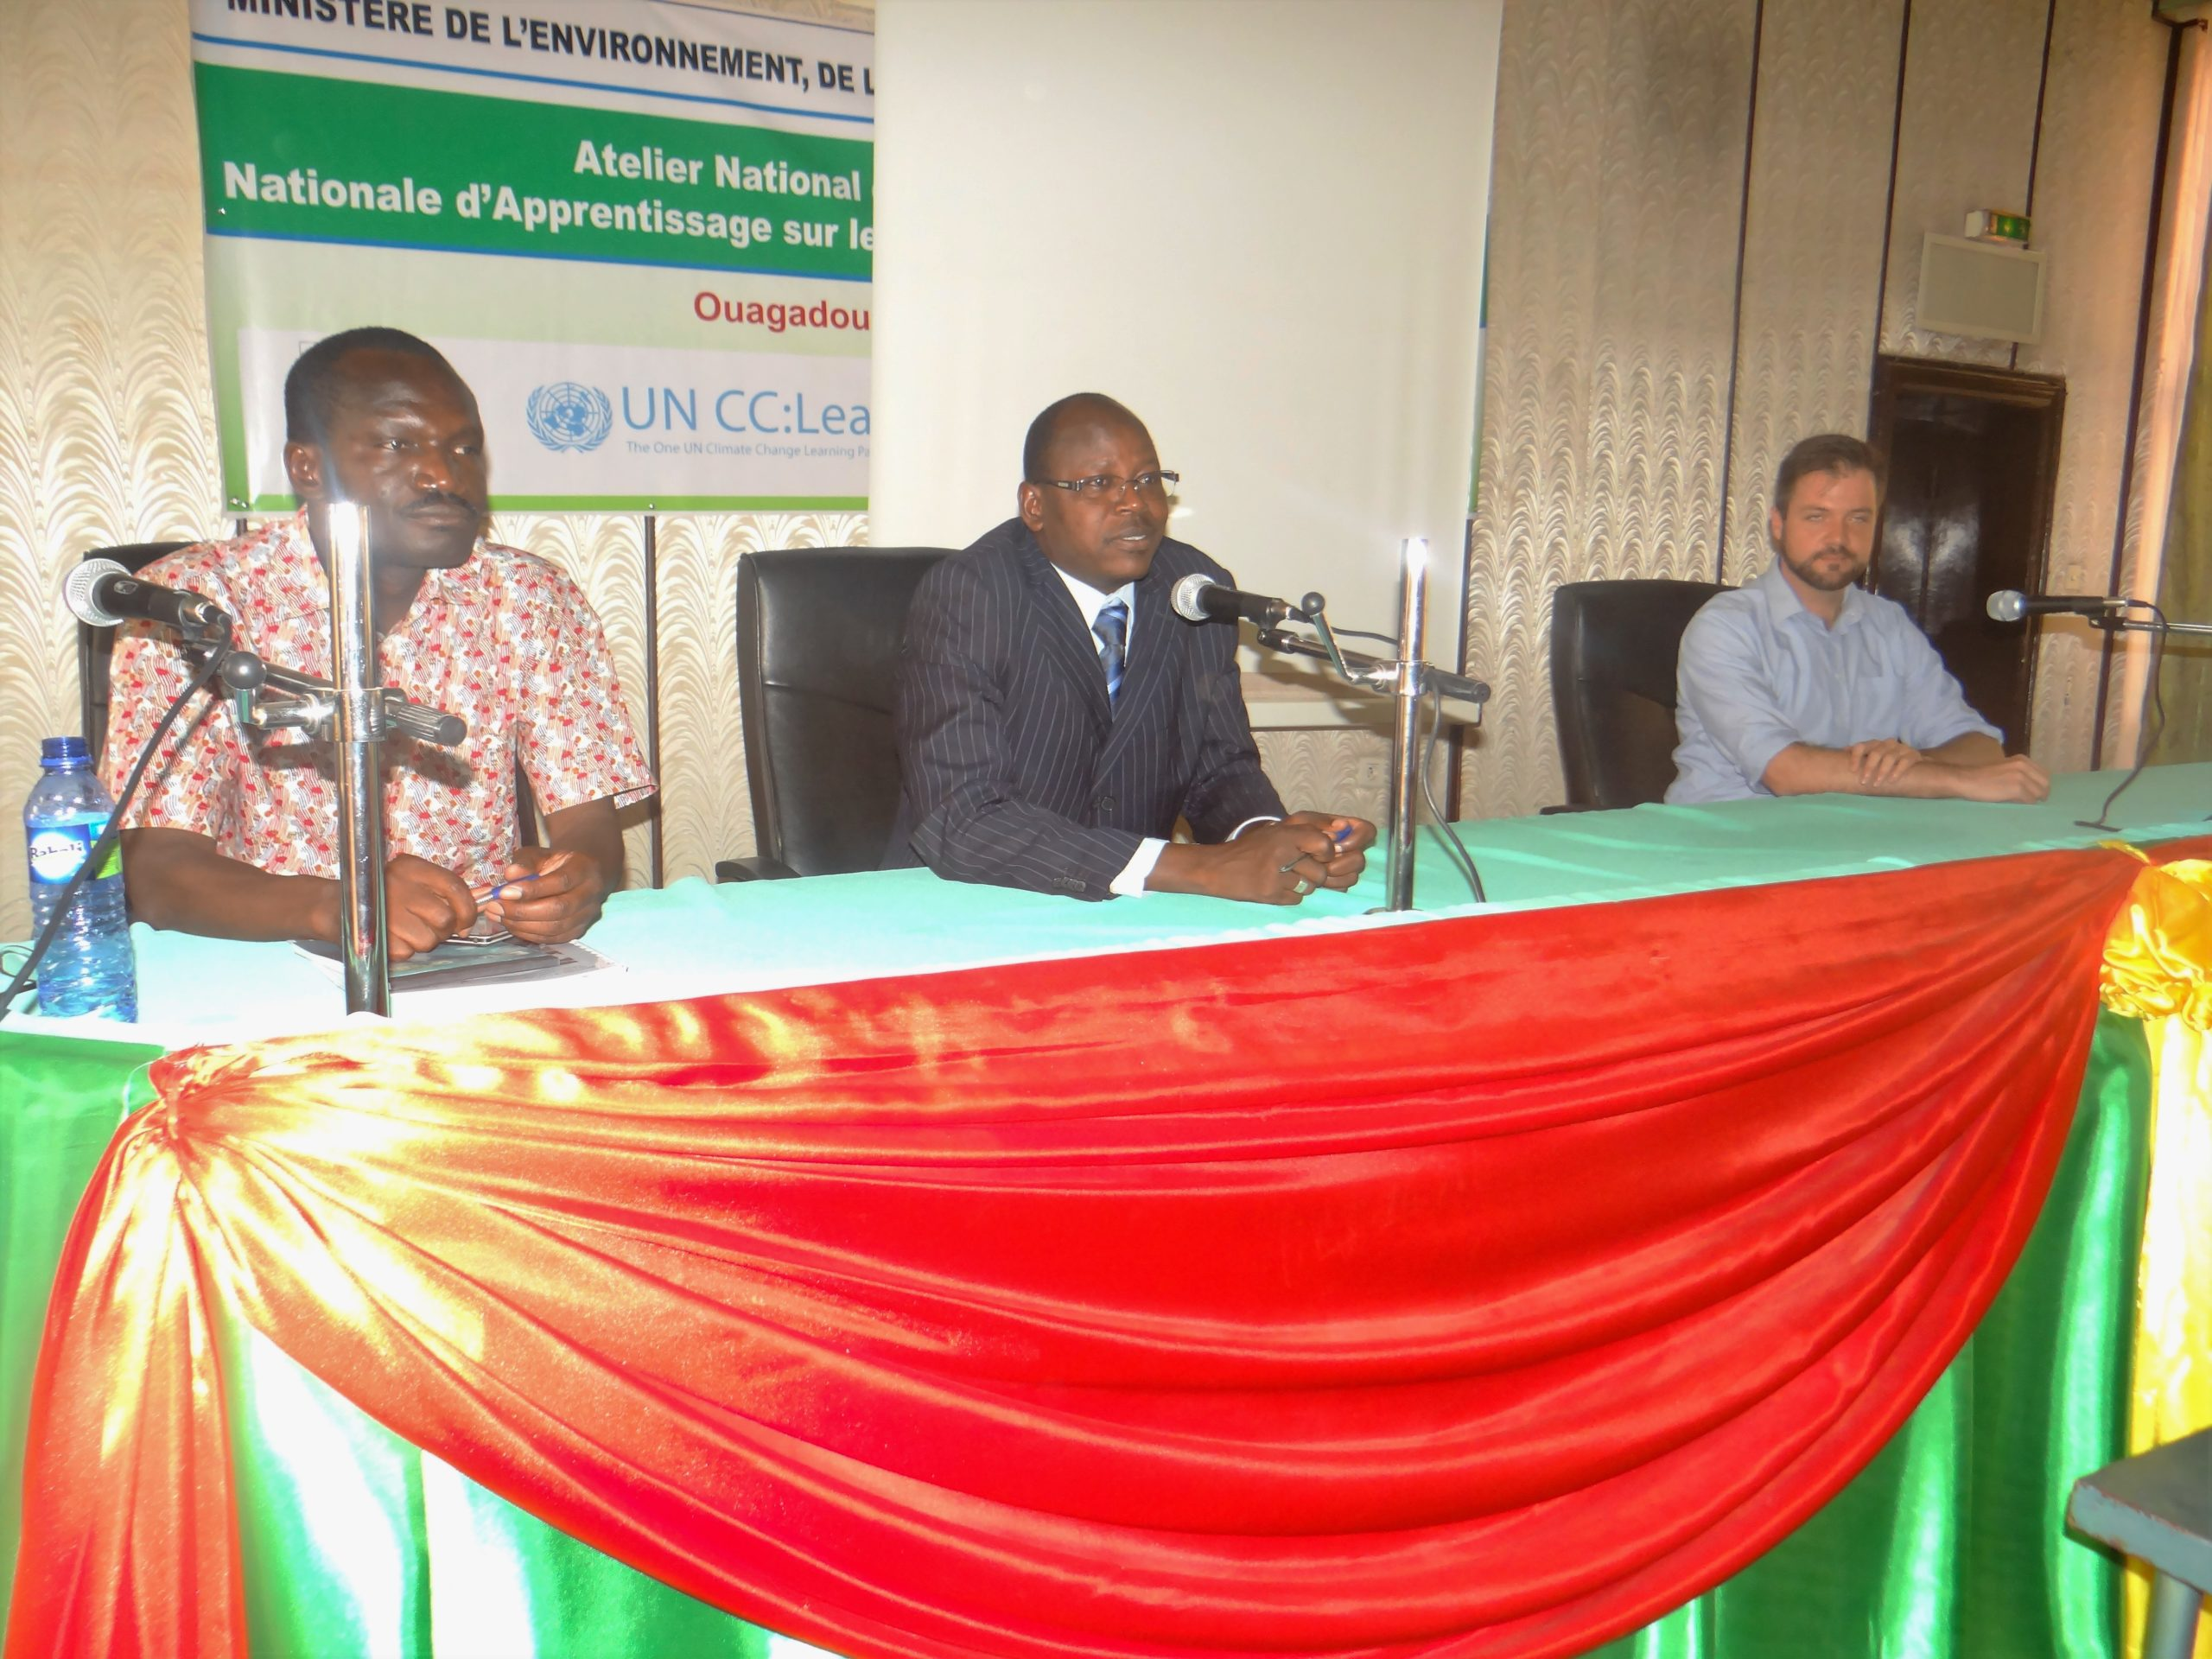 From left to right, Mr. Augustin Kabore, moderator of the workshop, Mr. Pamoussa Ouedraogo, Technical Coordinator of the SP/CNDD programs and Mr. Vincens Côté, representative of serétariat UN CC:Learn